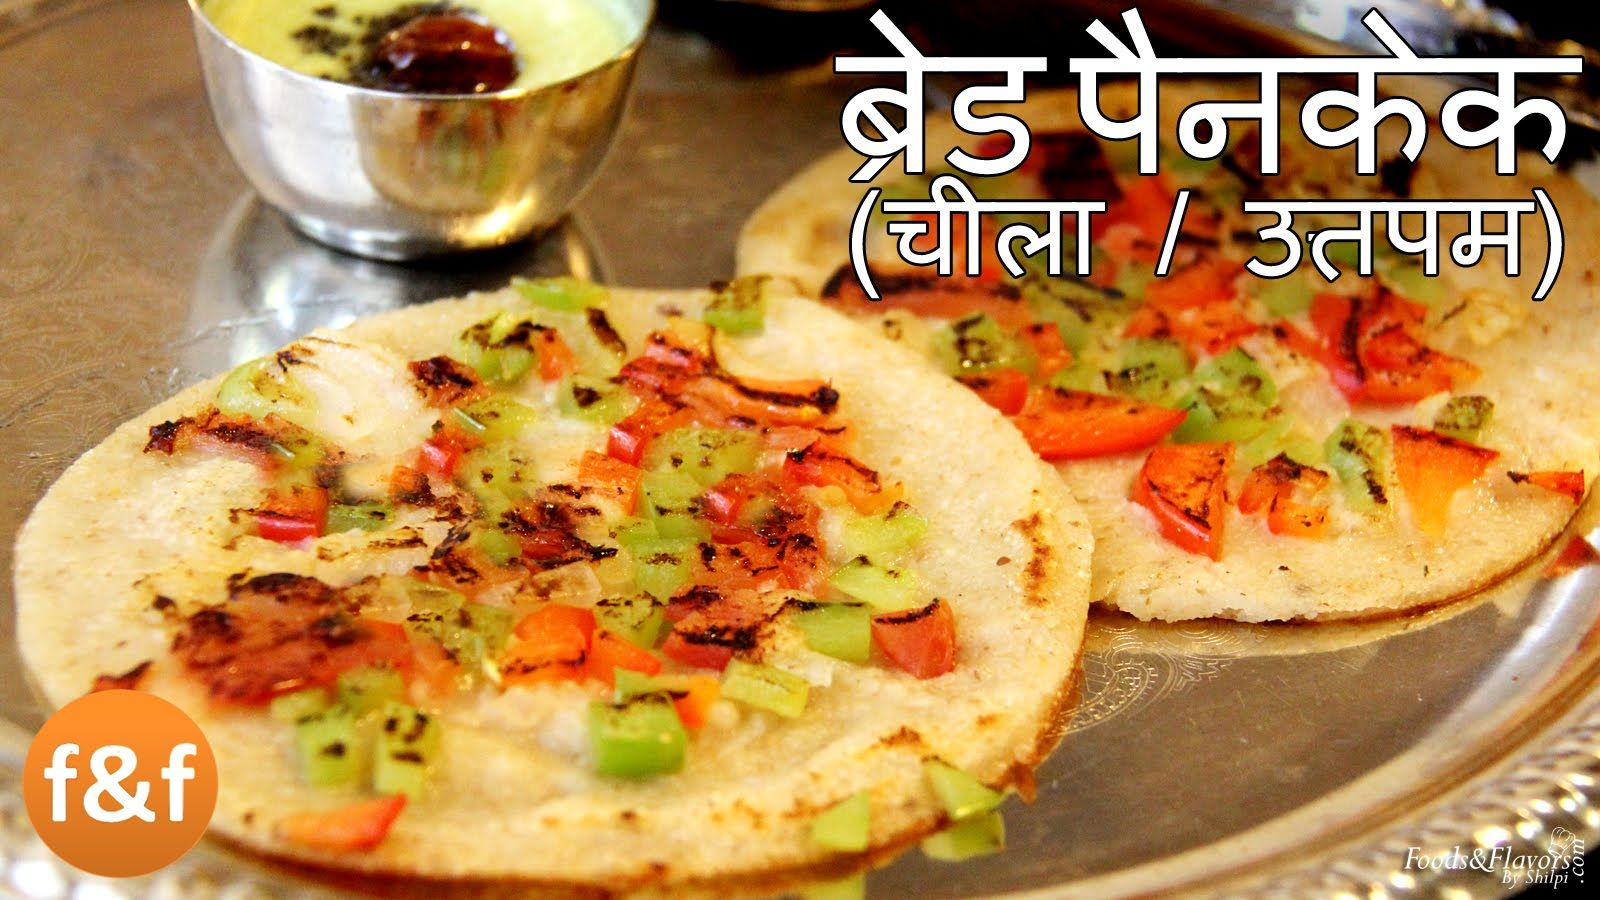 Bread pancake recipe in hindi bread uttapam or cheela easy bread 1d4b4a665674972a5eab34322d99357fg forumfinder Image collections